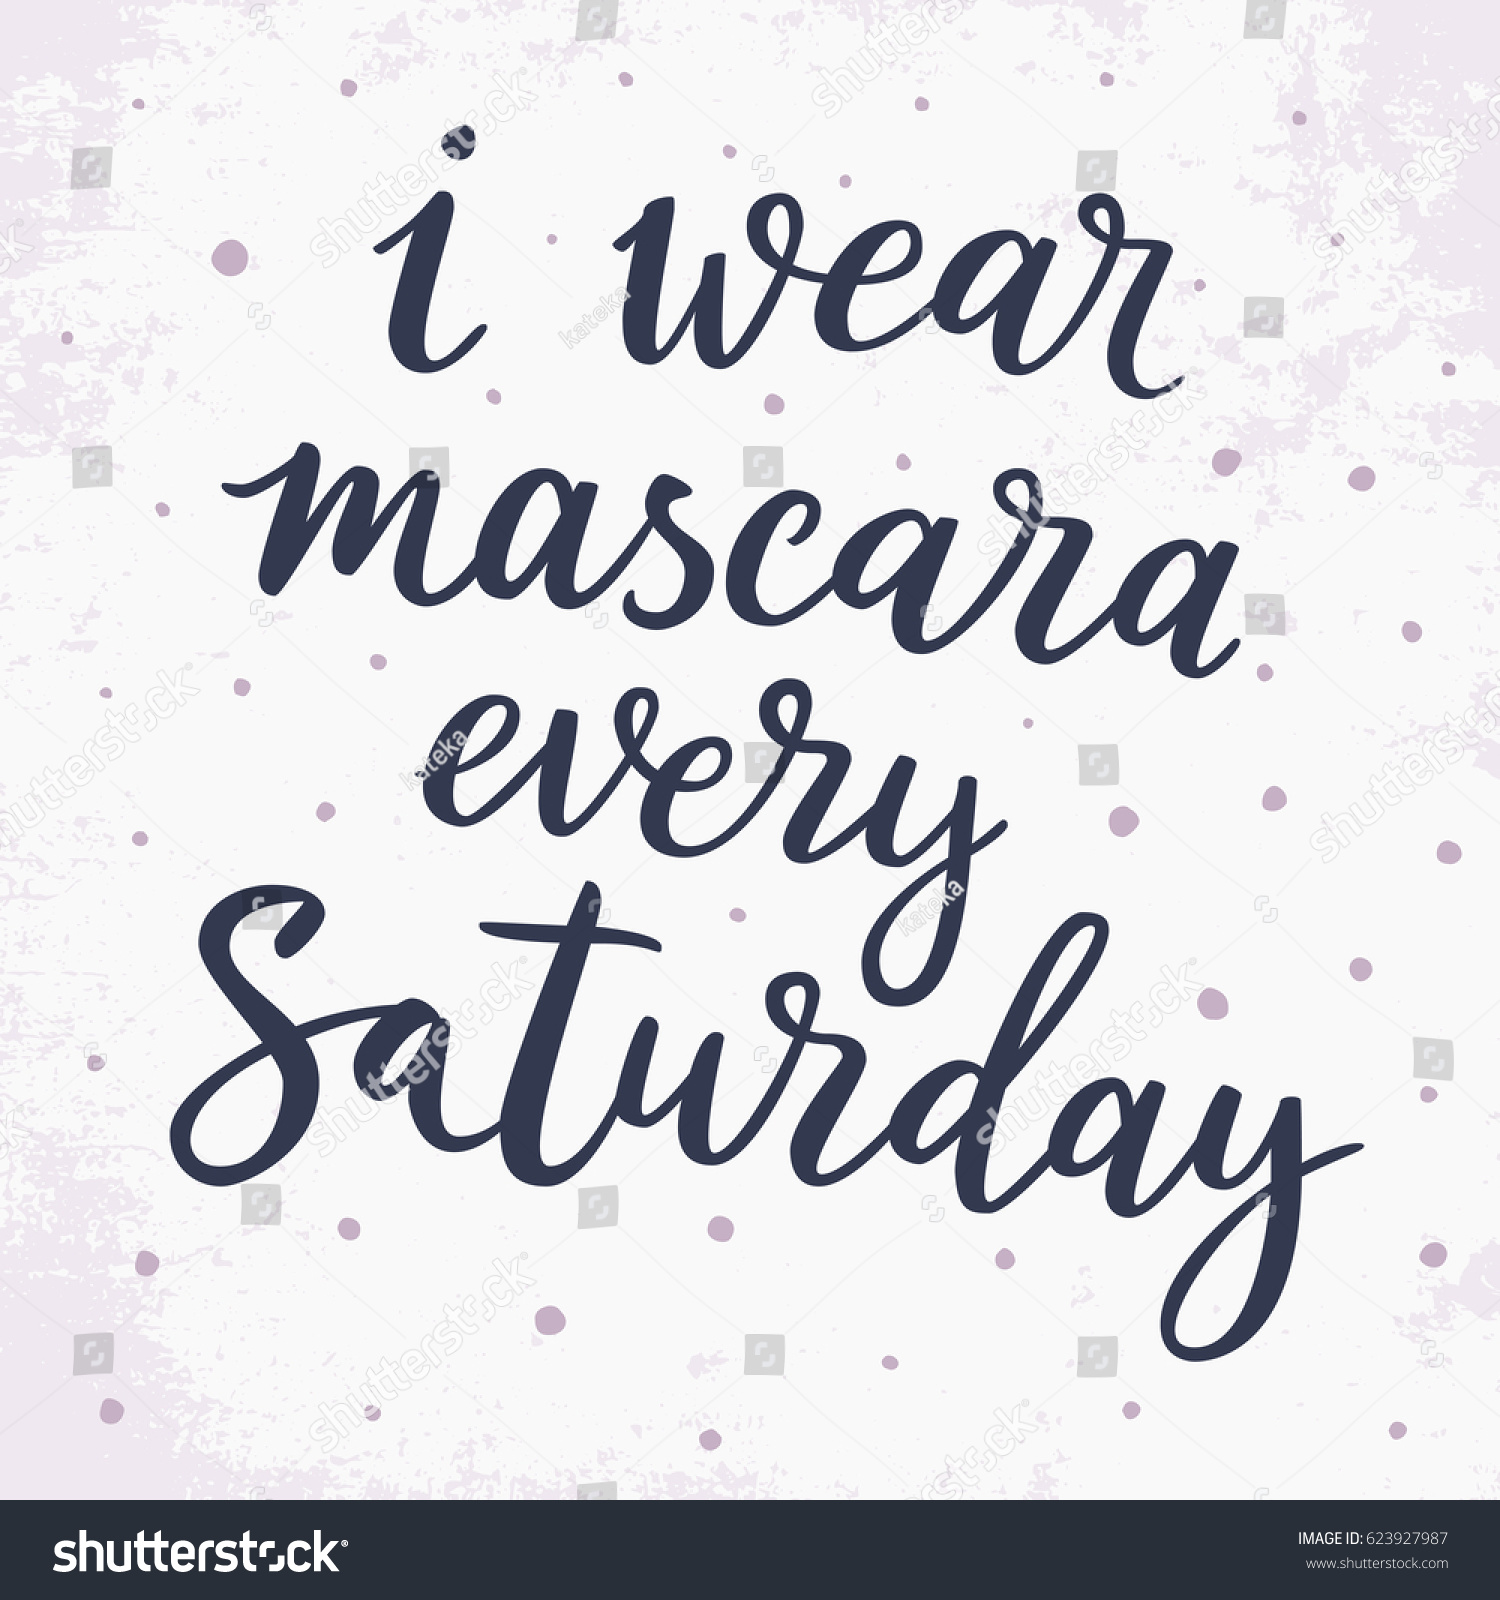 Mascara Quotes Wear Mascara Every Saturday Inspirational Quote Stock Vector